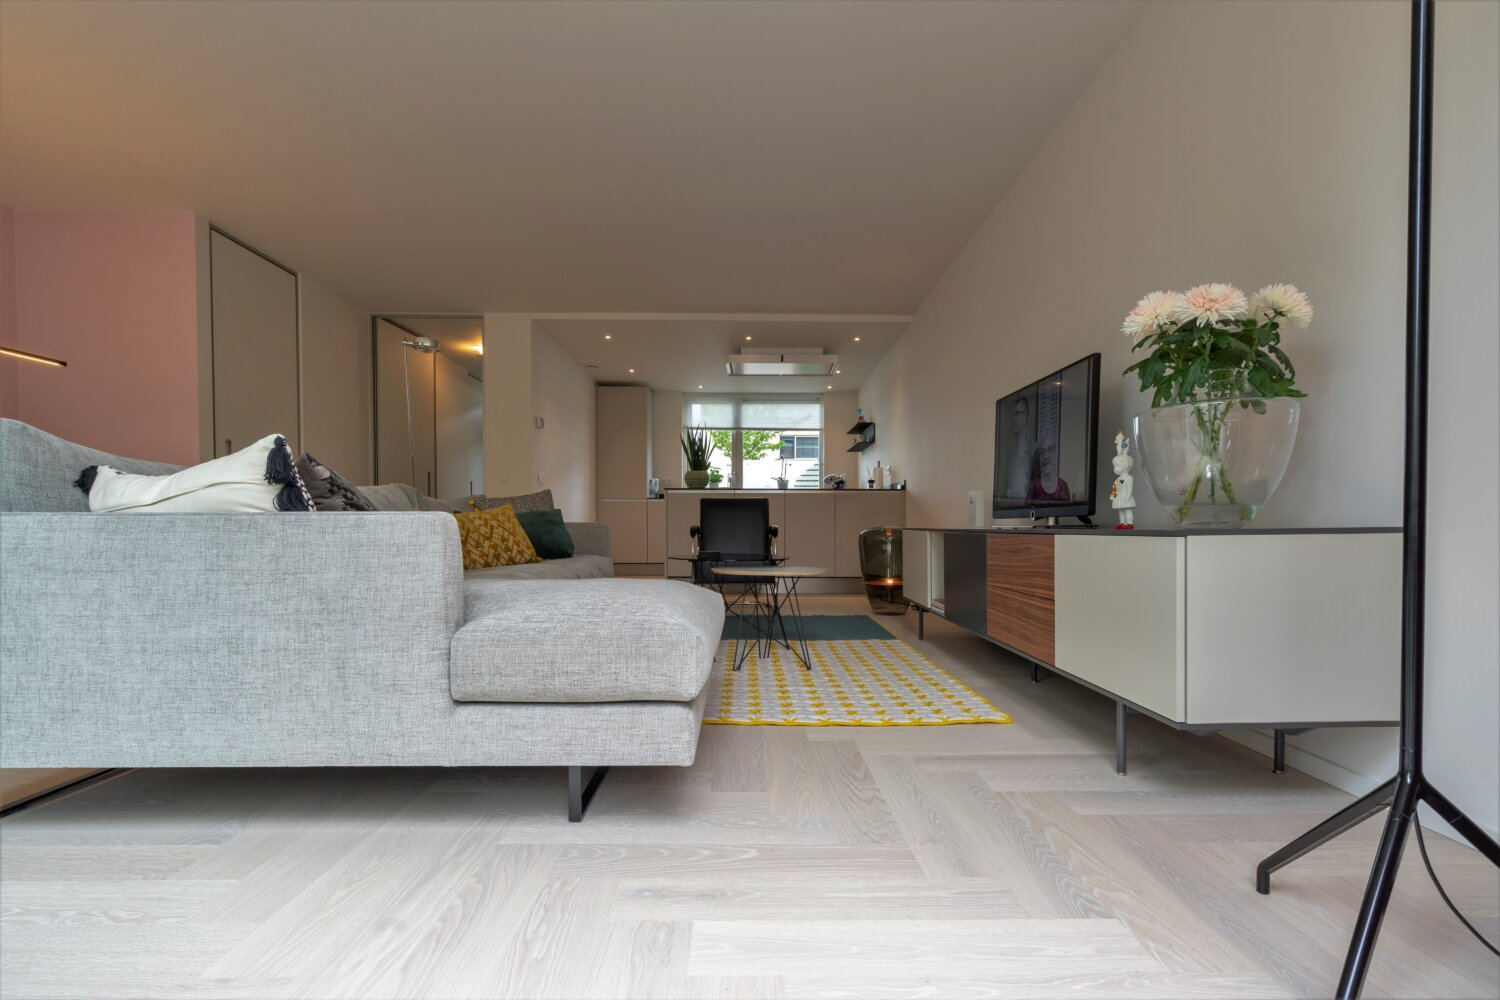 Vloerenhuis Amsterdam is the most perfect parquetfloor shop in Amsterdam